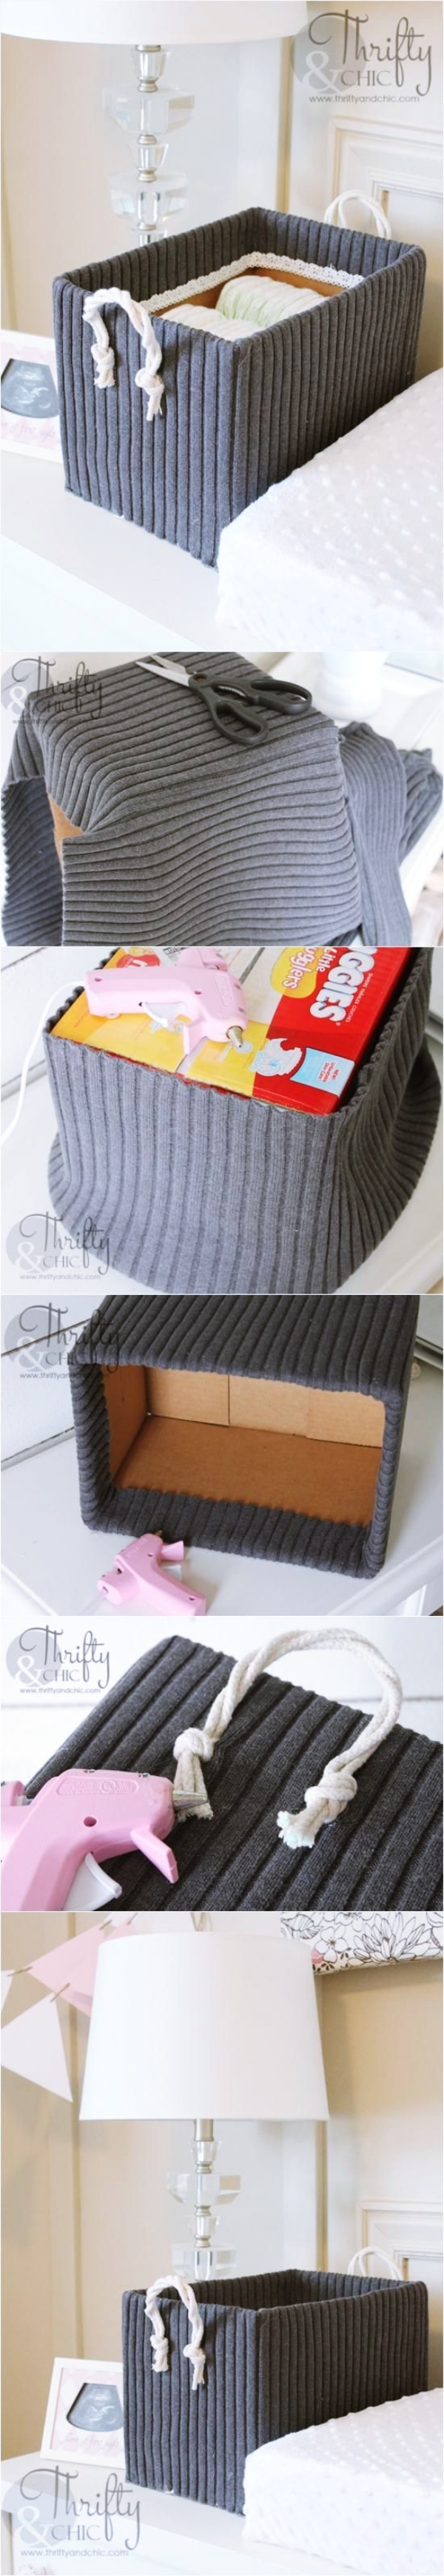 Genius-Ways-to-Use-Old-Cardboard-Boxes